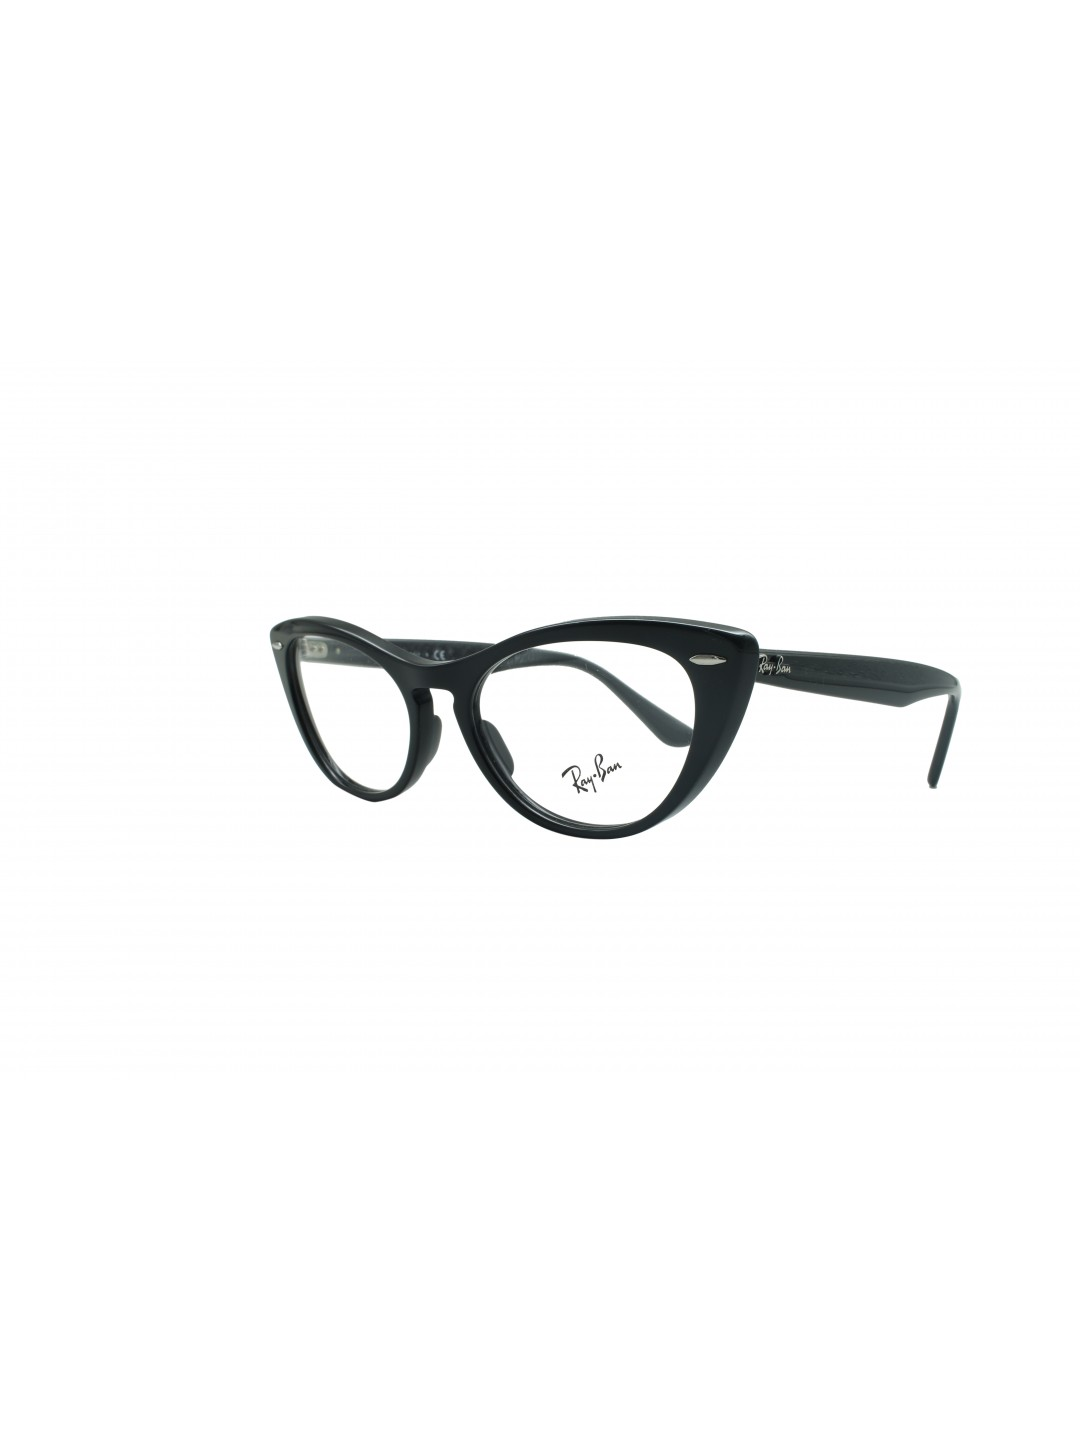 RayBan RB 4314 2000 Cat Eye Black Full Frame With Acetate